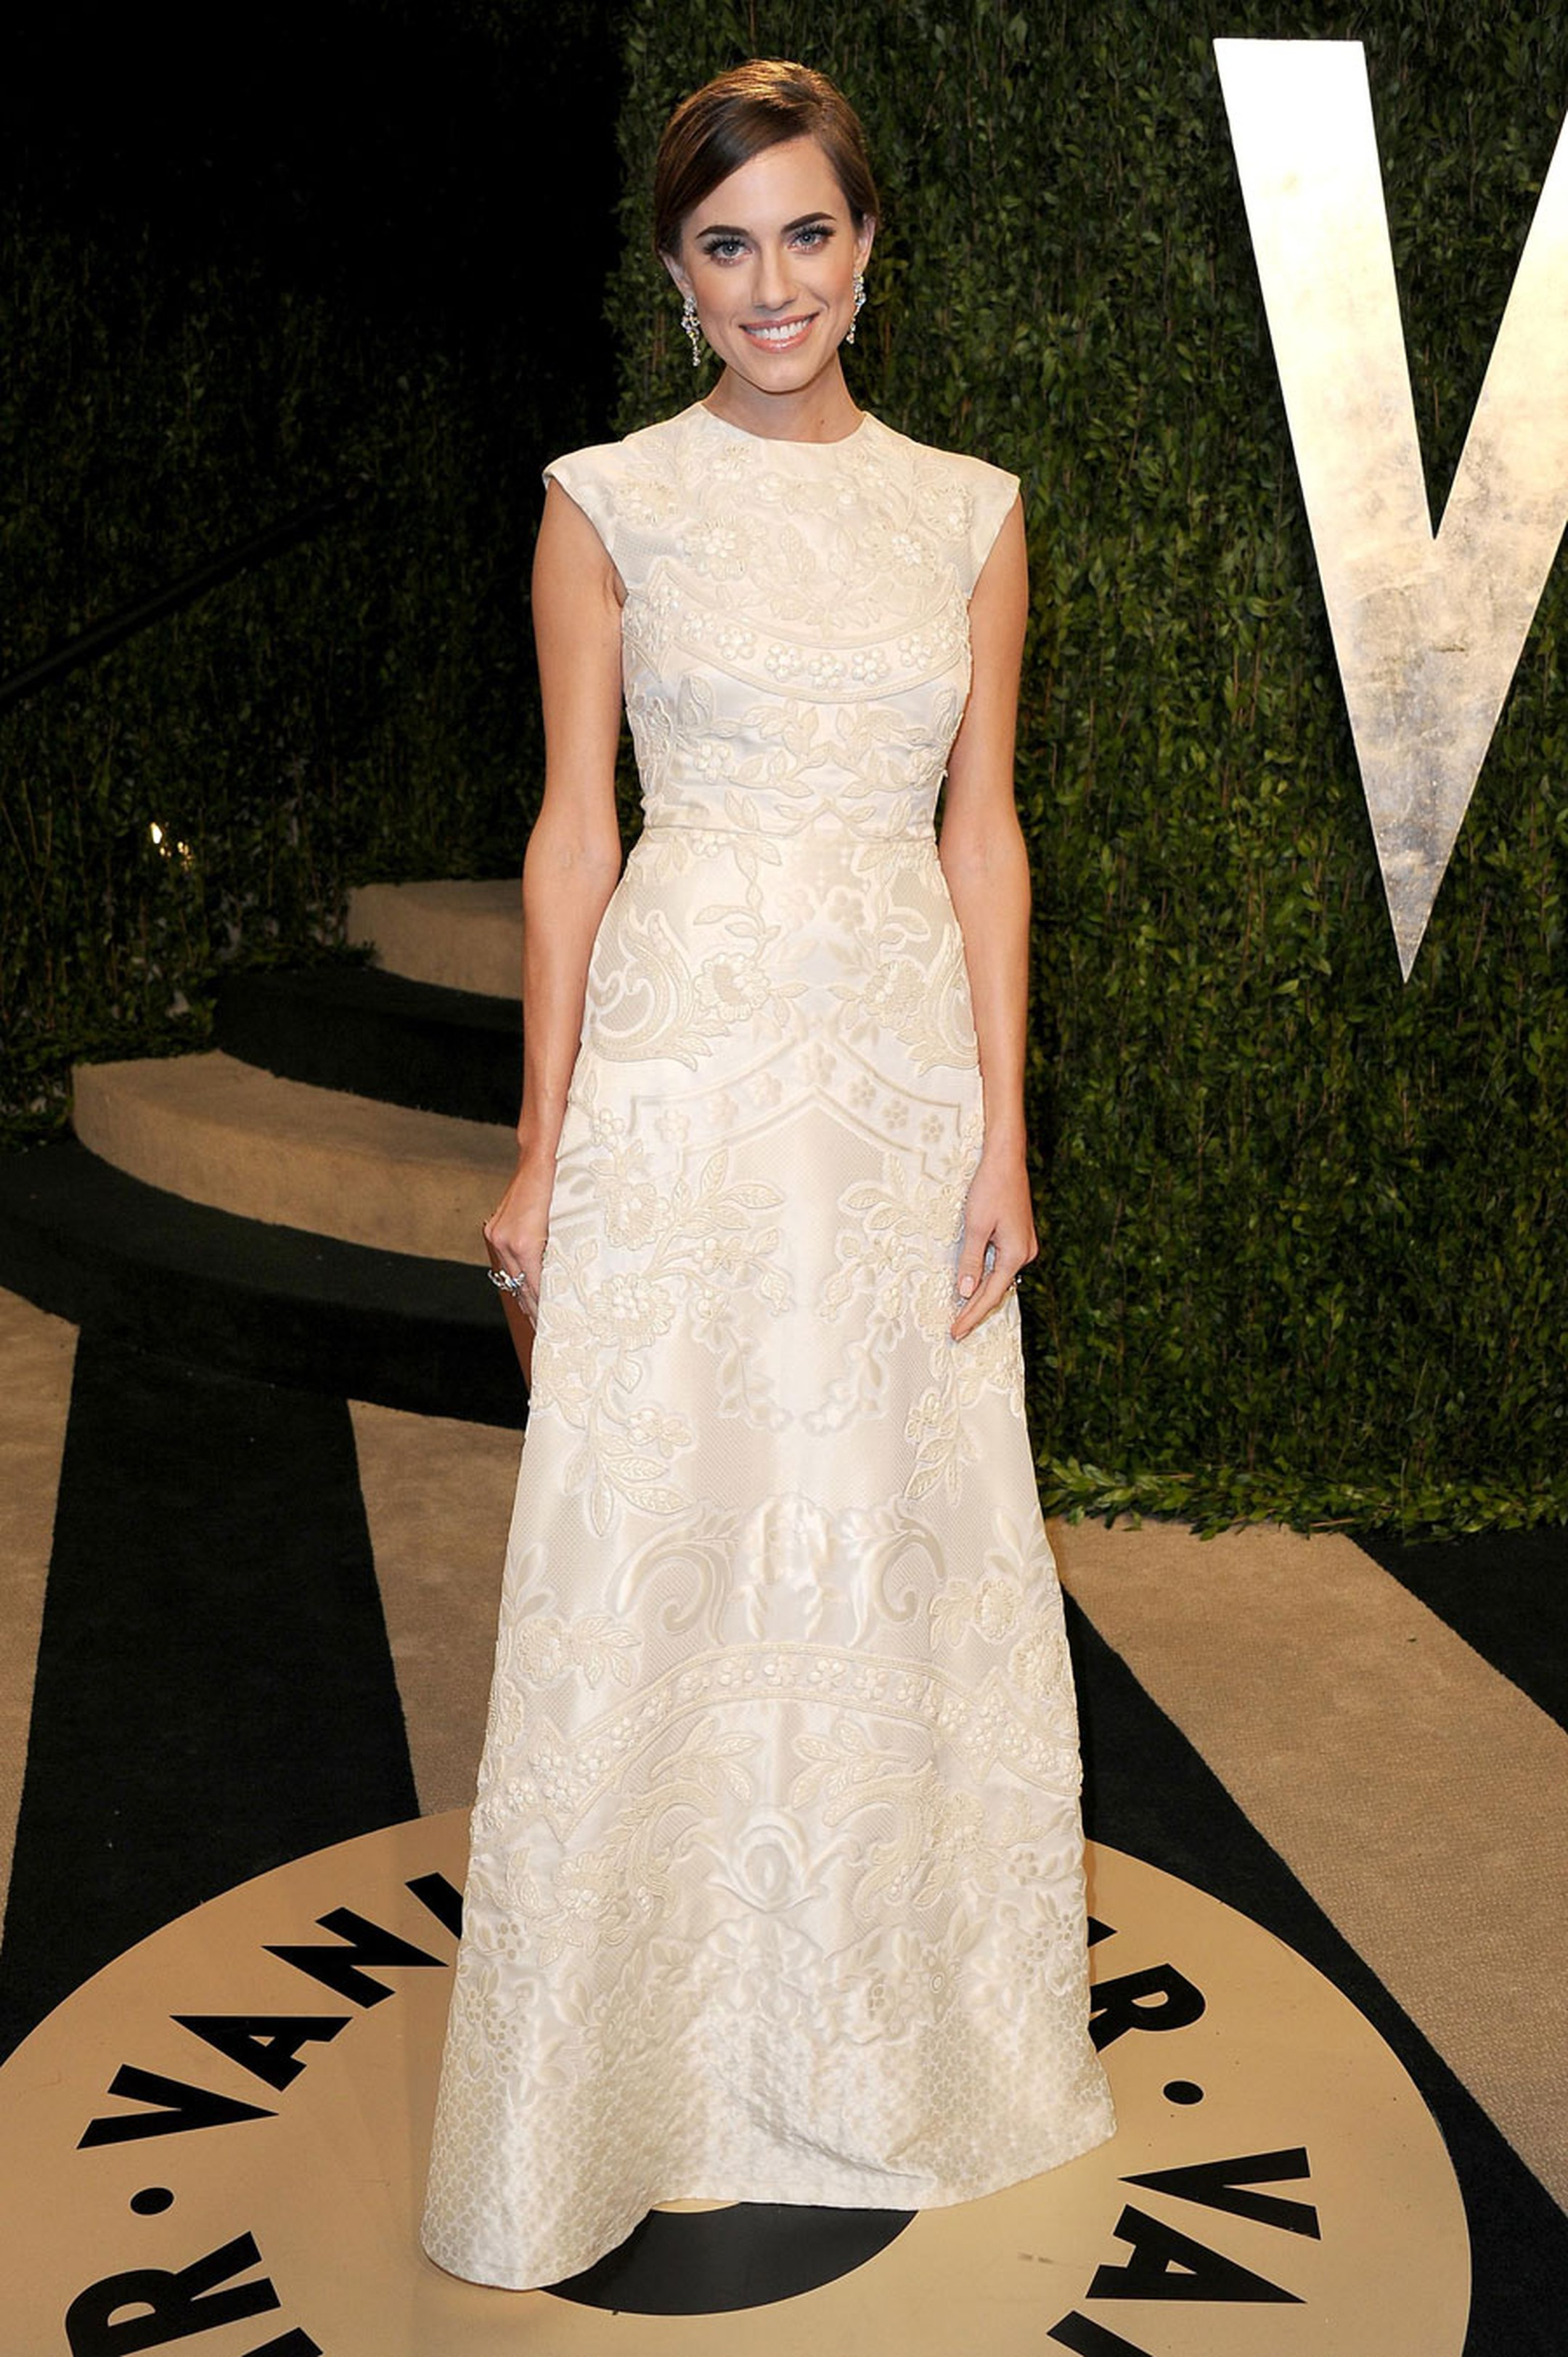 Allison-Williams---Van-Cleef-and-Arpels---Photo-by-Pascal-Le-Segretain-Getty-Images-162607403.jpg